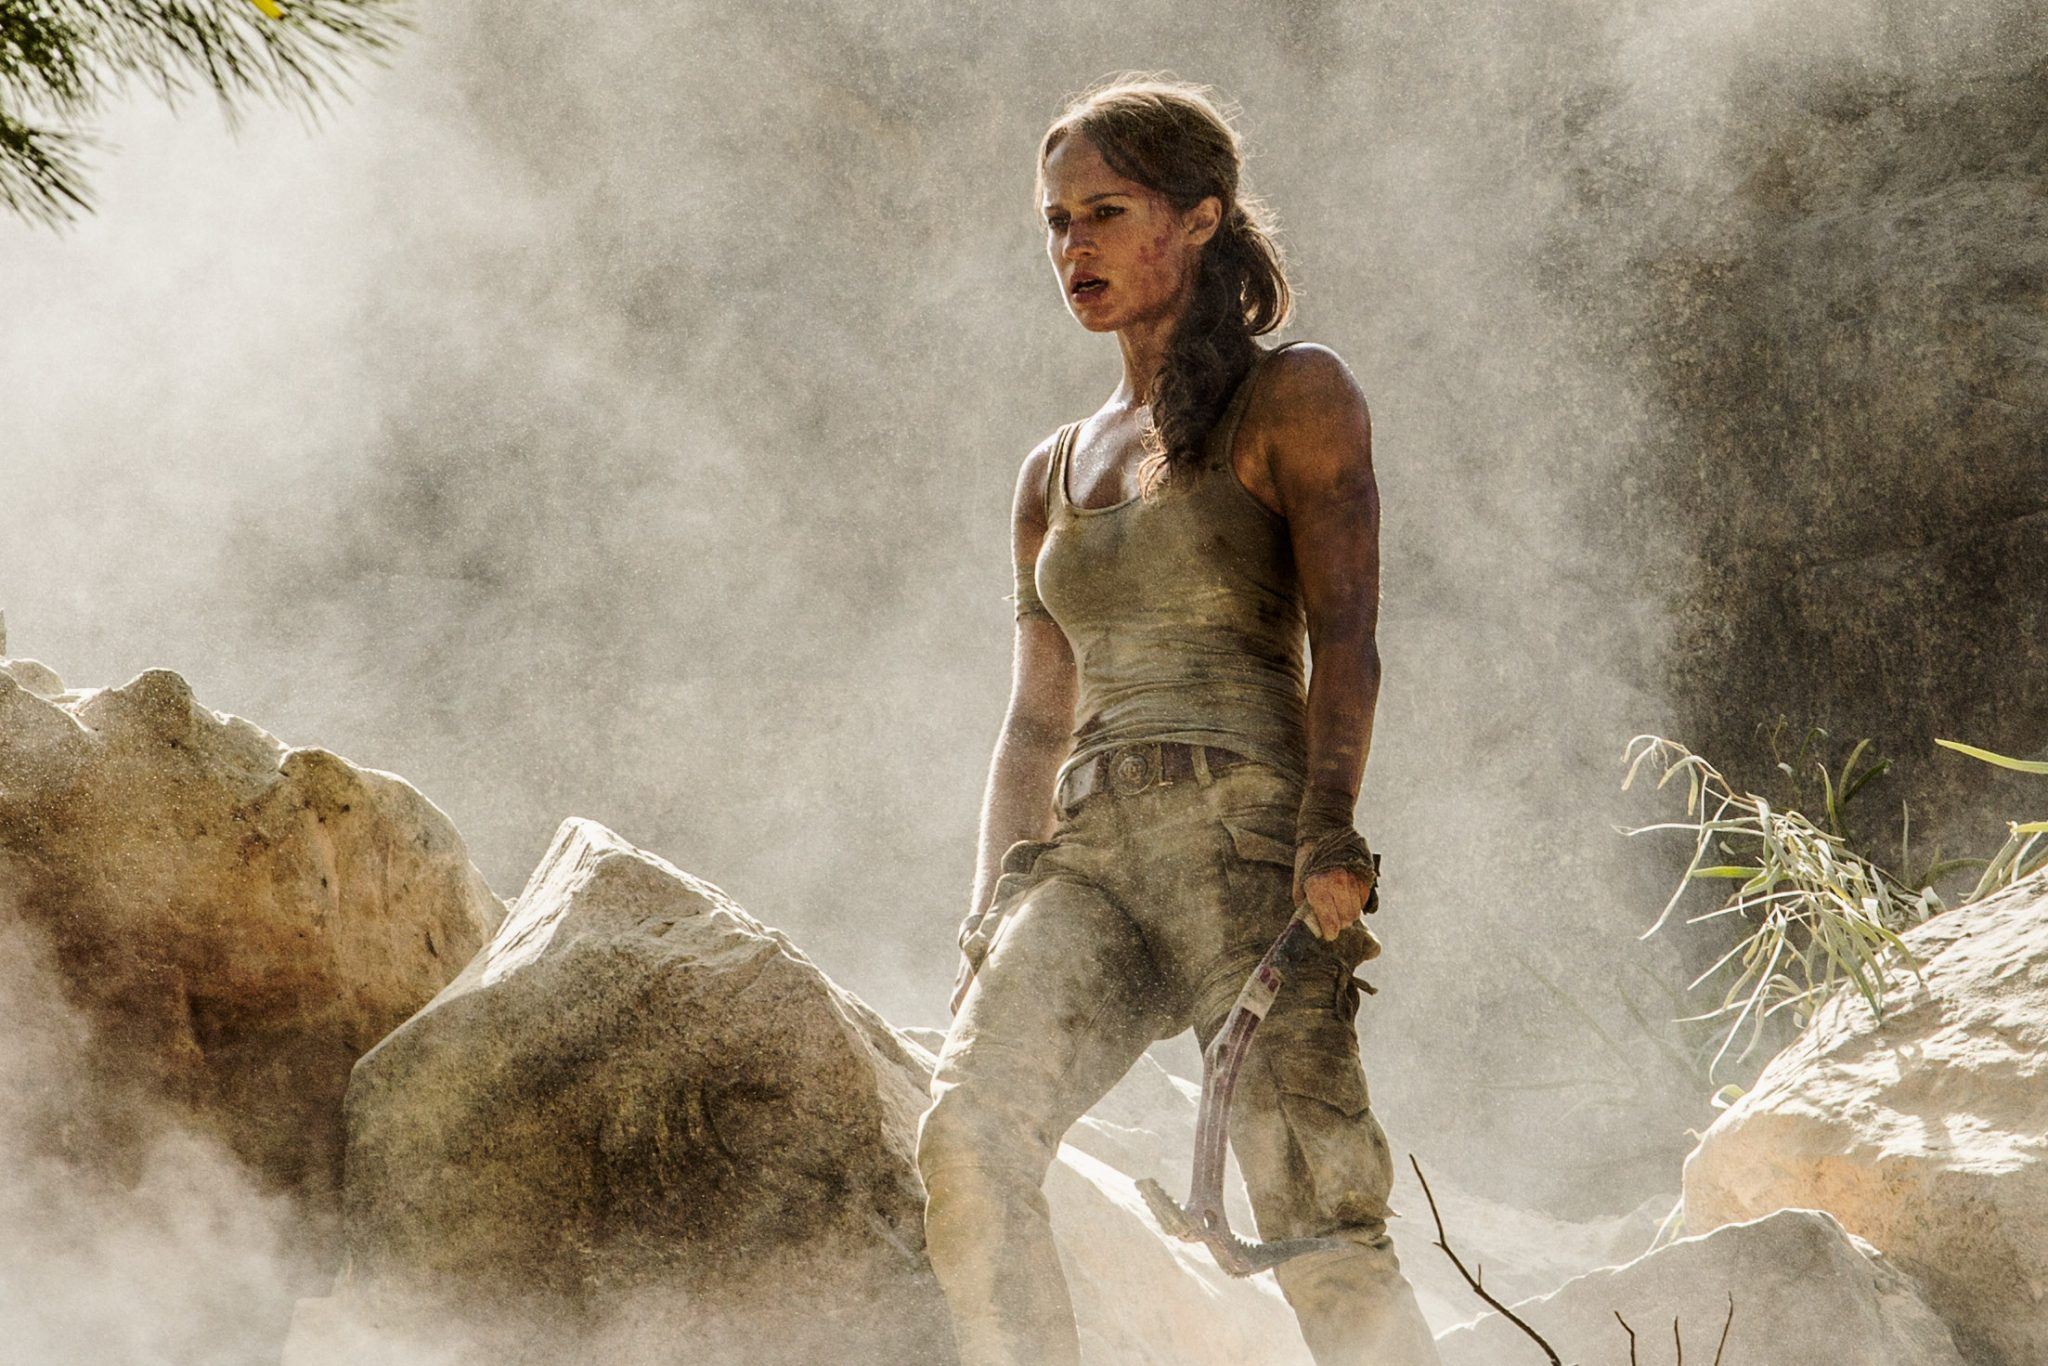 Alicia Vikander Sure Looks Like Lara Croft in These Tomb Raider Photos